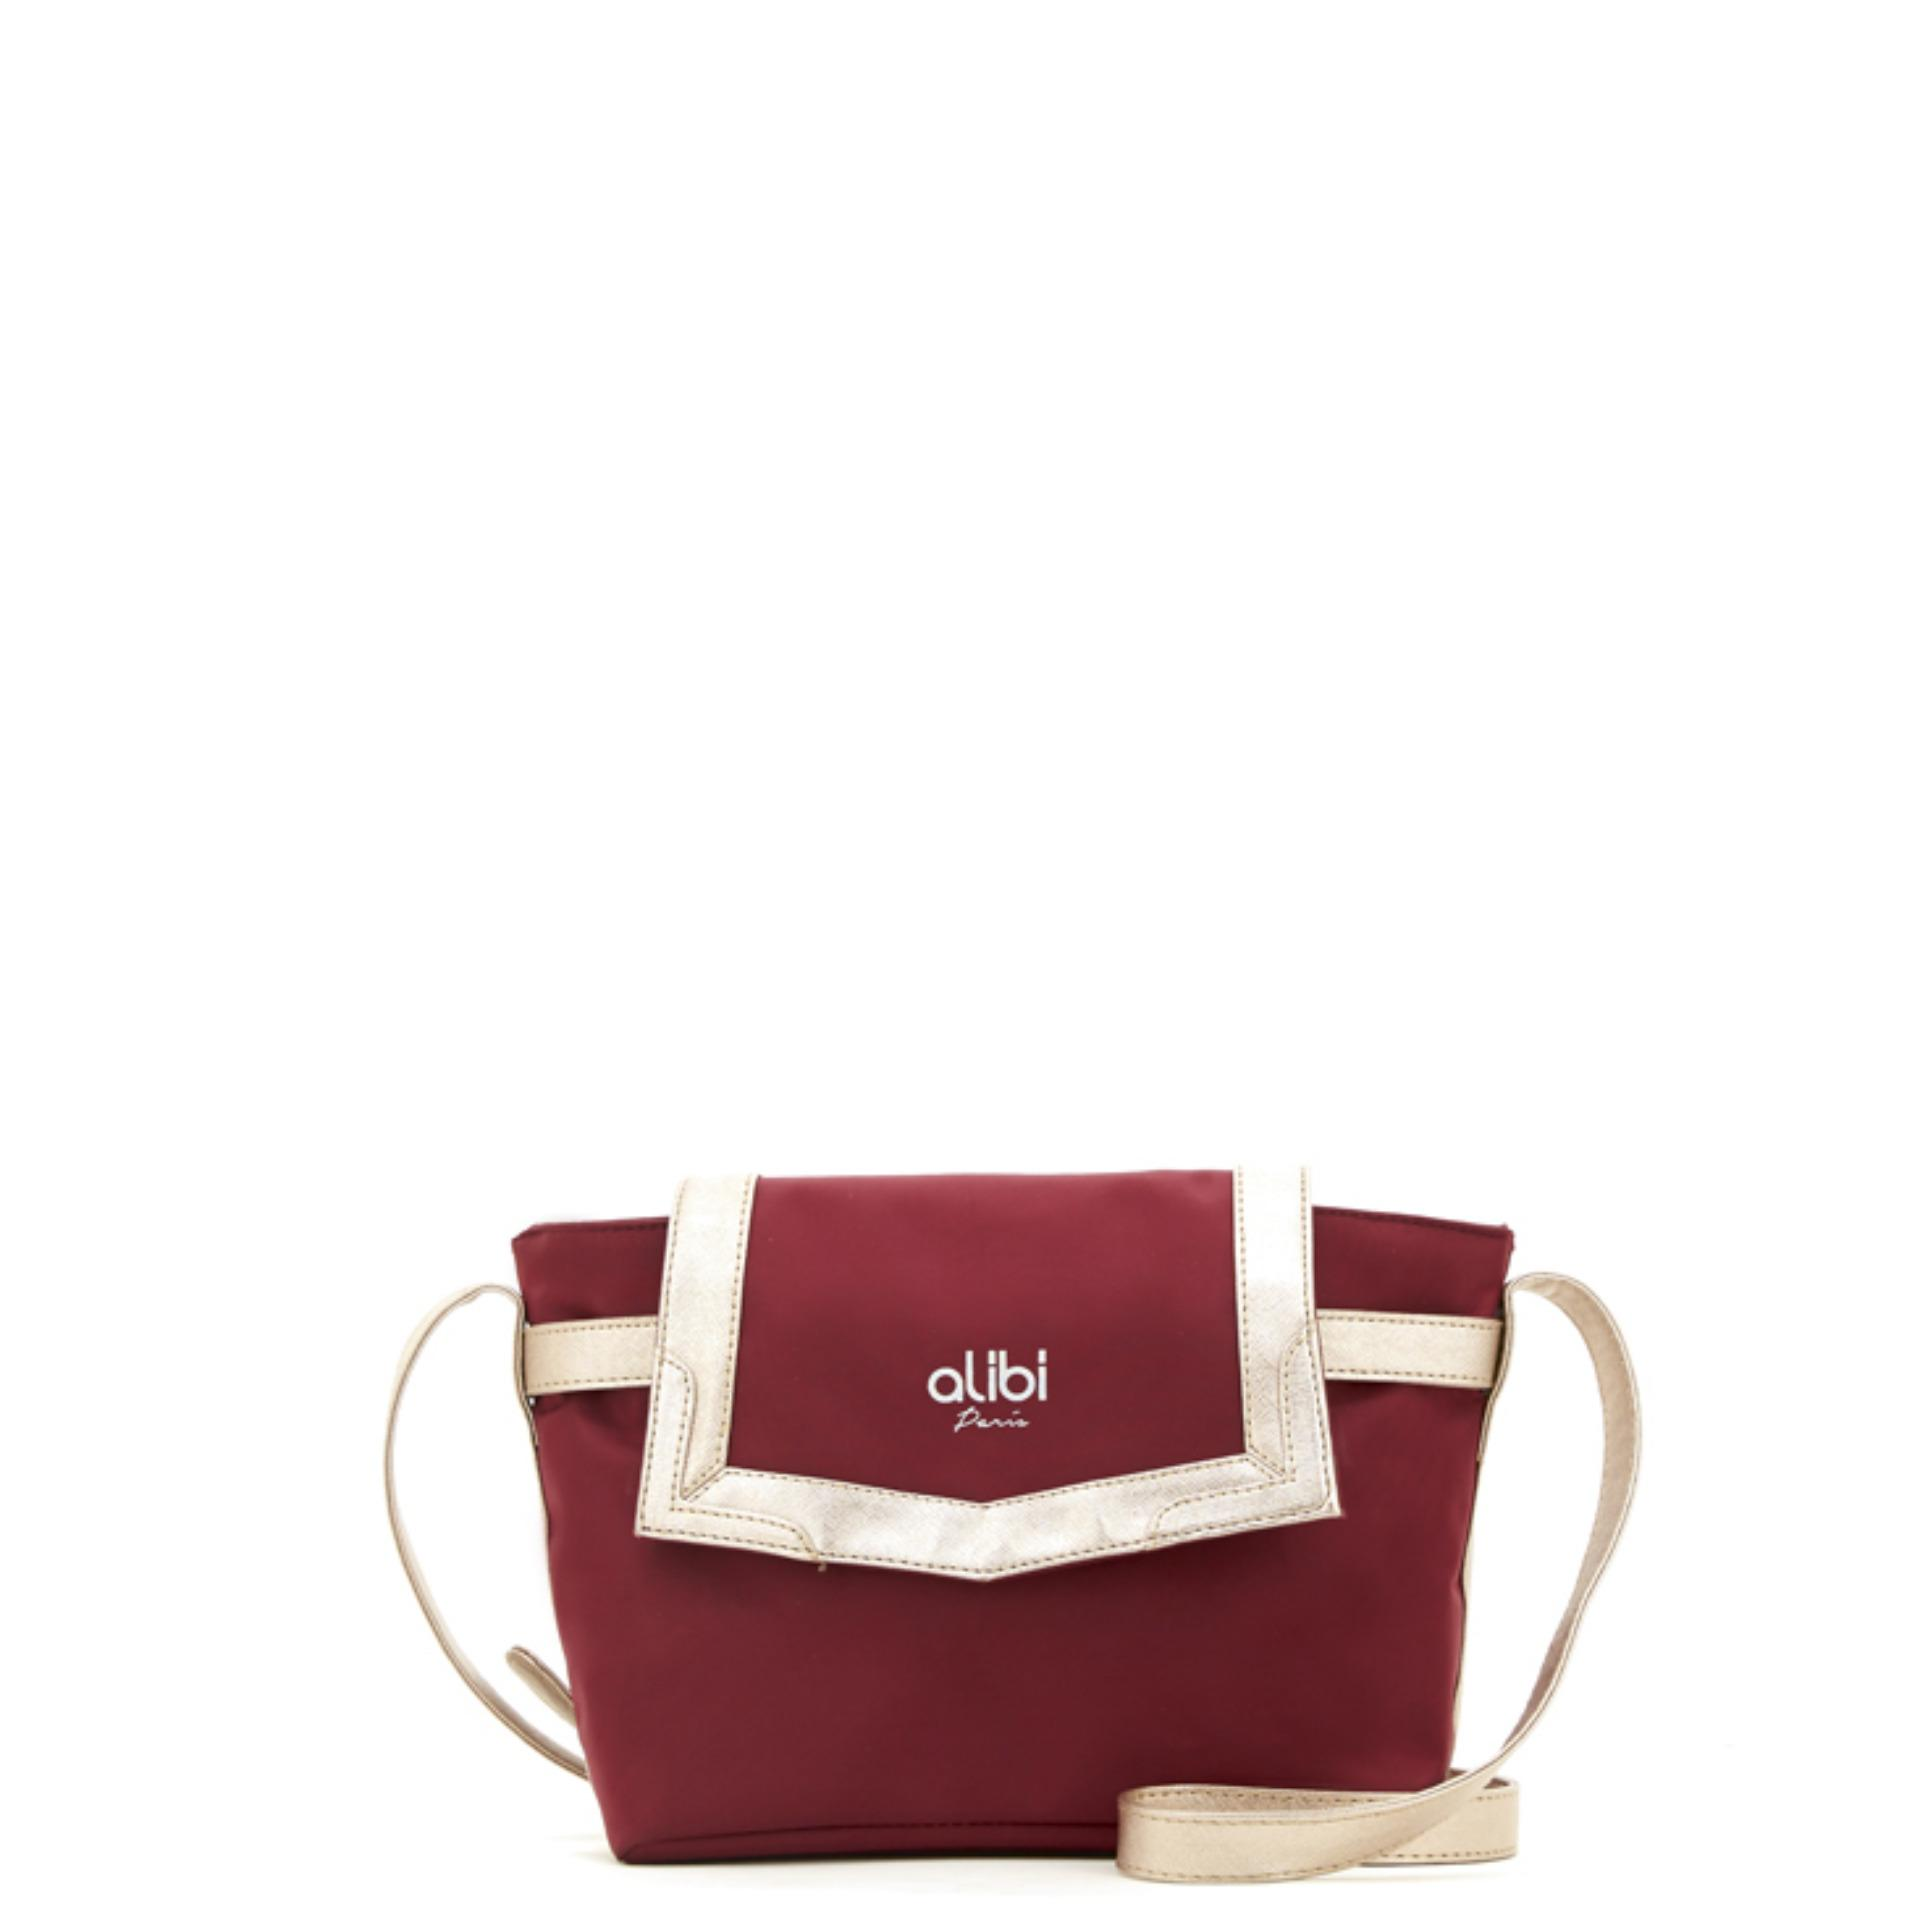 Alibi Paris Hadid Bag Alibi Paris Diskon